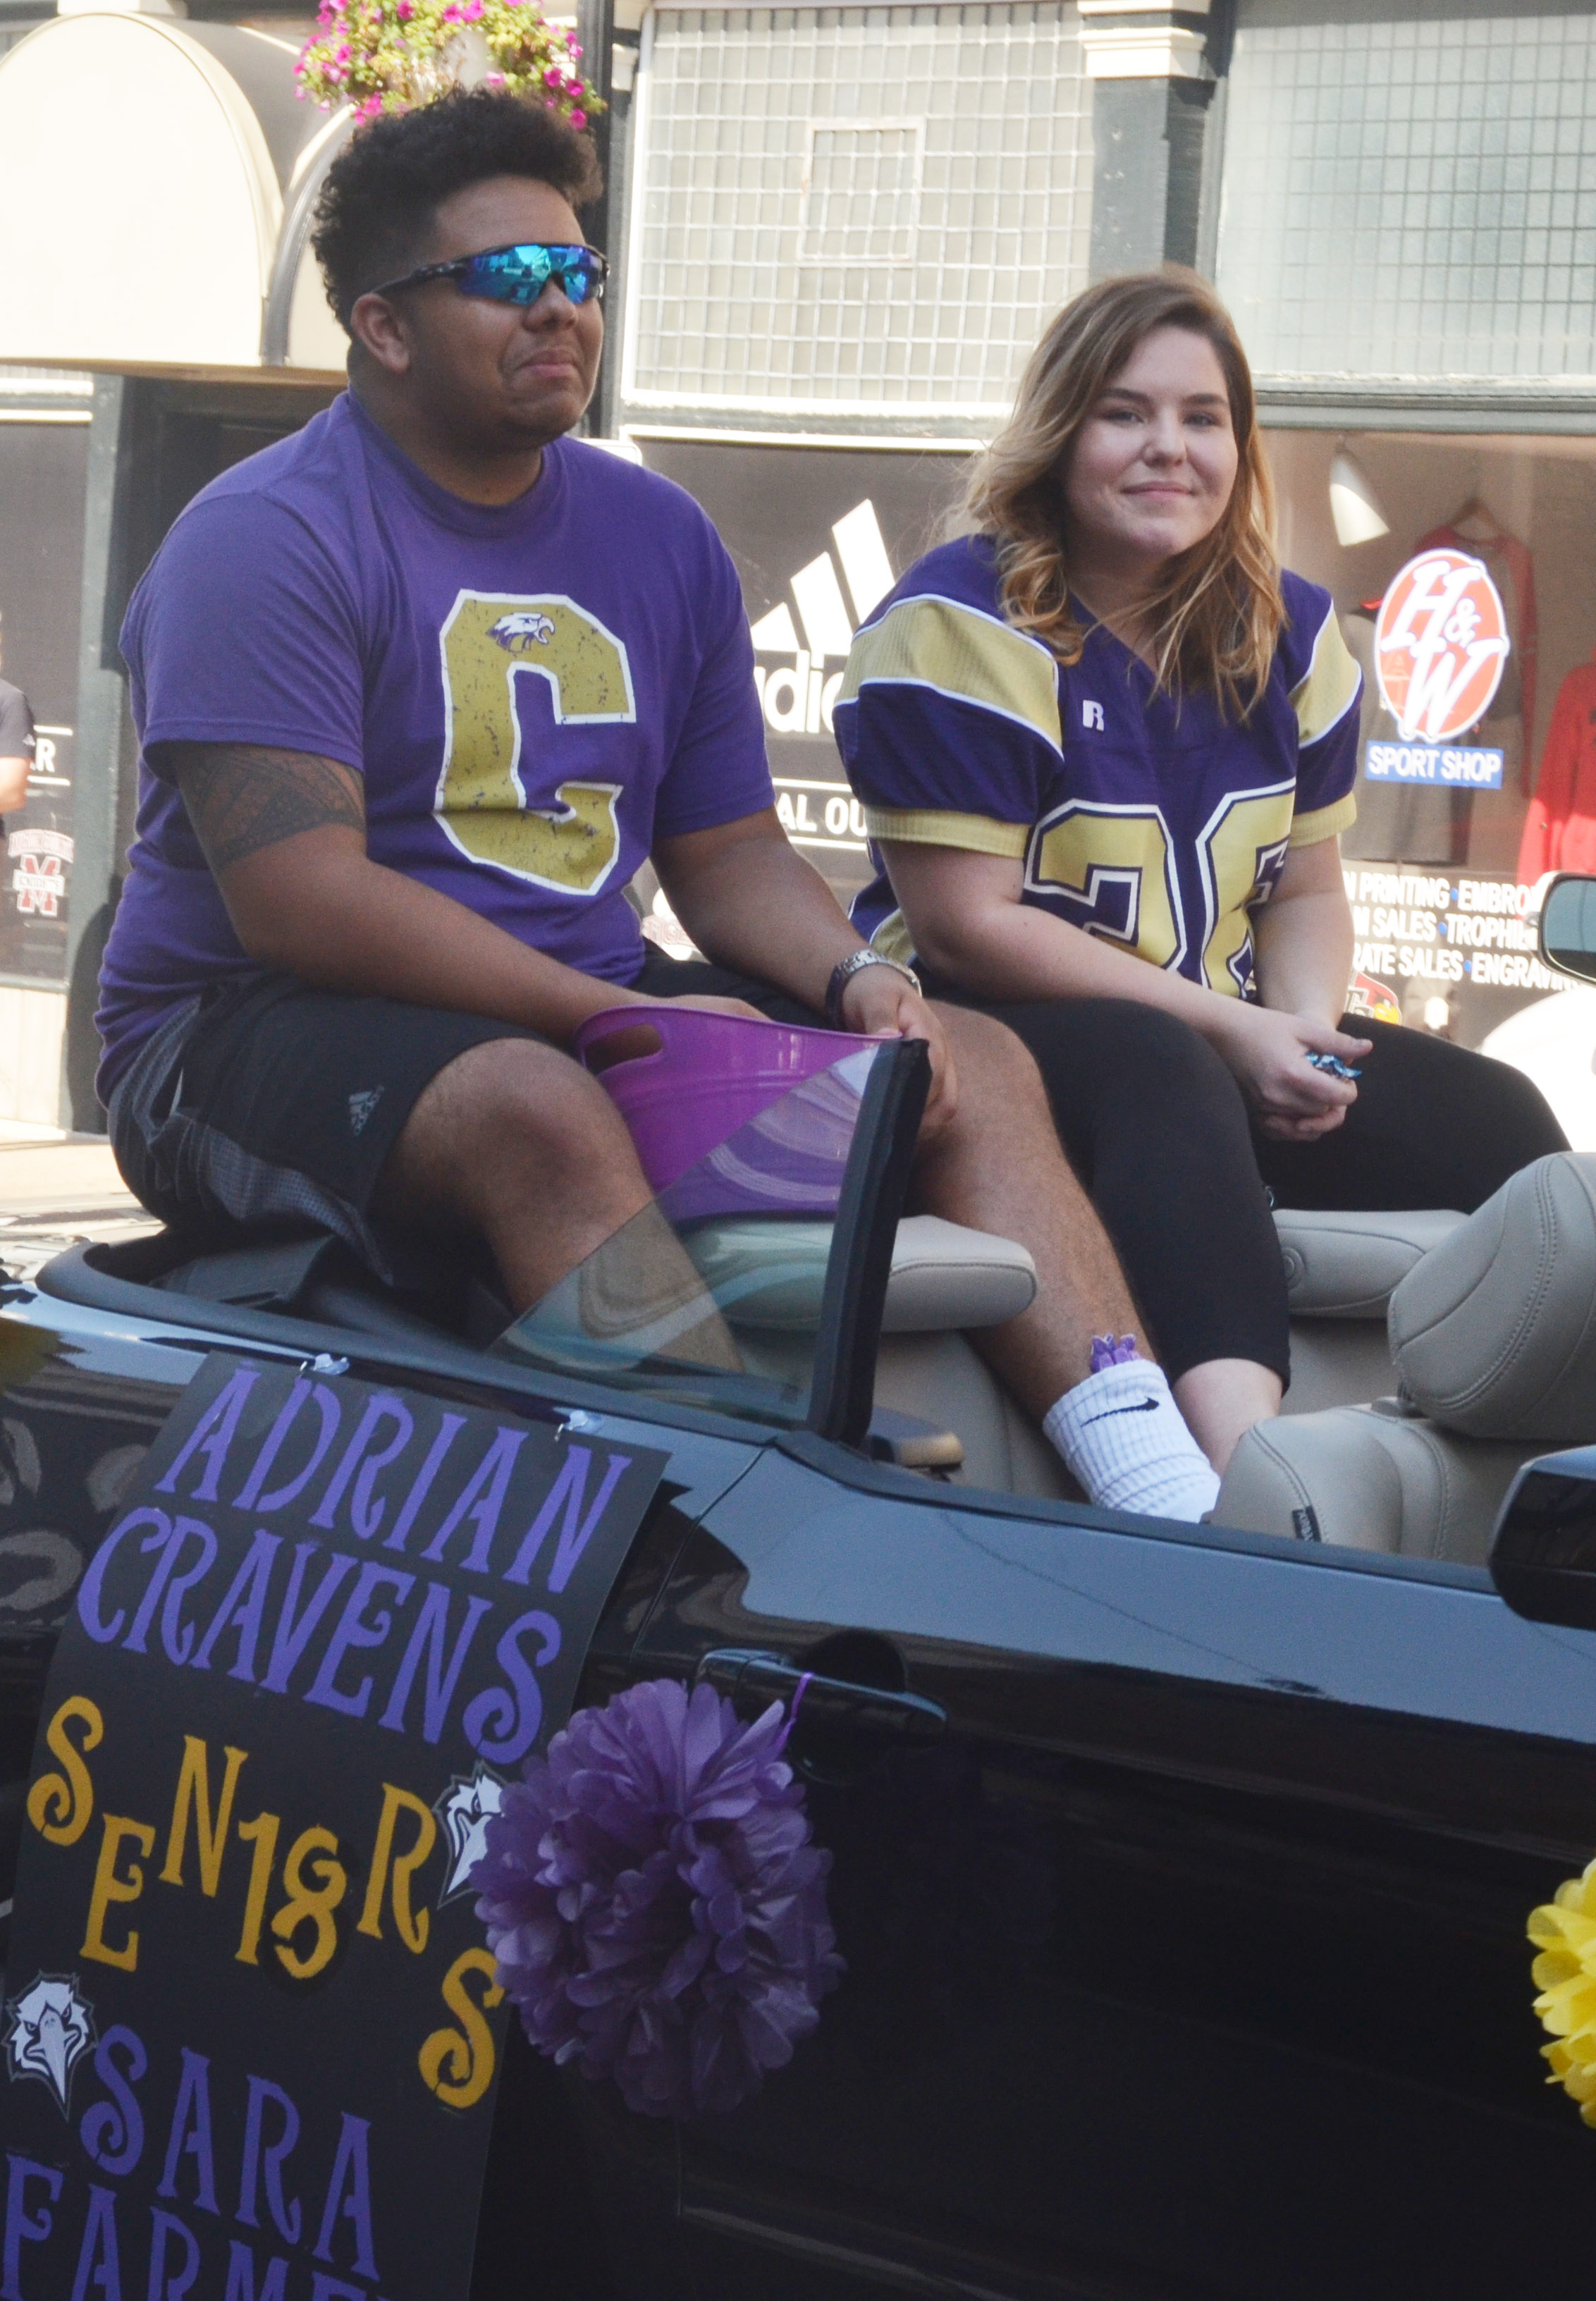 CHS senior homecoming candidates Adrian Cravens and Sara Farmer ride in the parade.